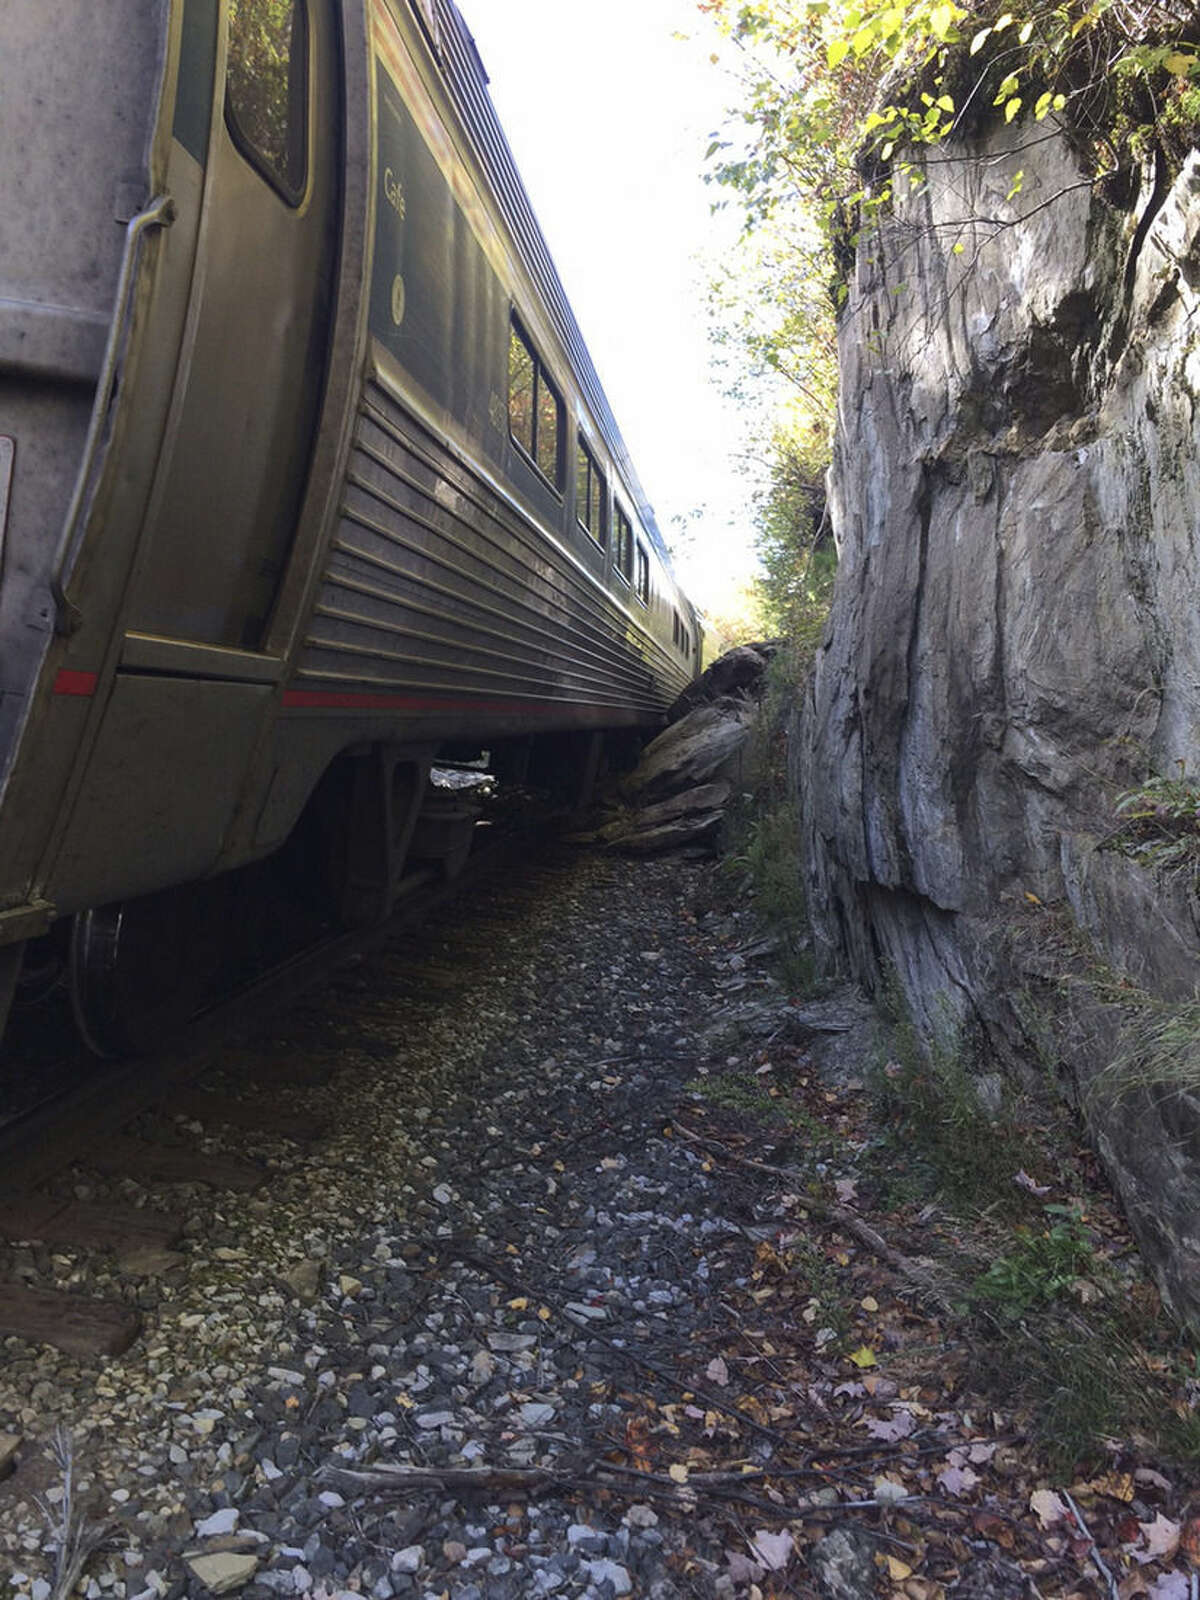 In this photo provided by Brian Bell, one of the cars of an Amtrak train is seen after the train derailed, Monday, Oct. 5, 2015, near Roxbury, Vt., about 20 miles southwest of Montpelier, Vt. The train, the Vermonter, was headed from Vermont to Washington, D.C., when it apparently struck rocks that were on the tracks. No life-threatening injuries were reported. (Cathy Bell/Courtesy of Brian Bell via AP) MANDATORY CREDIT